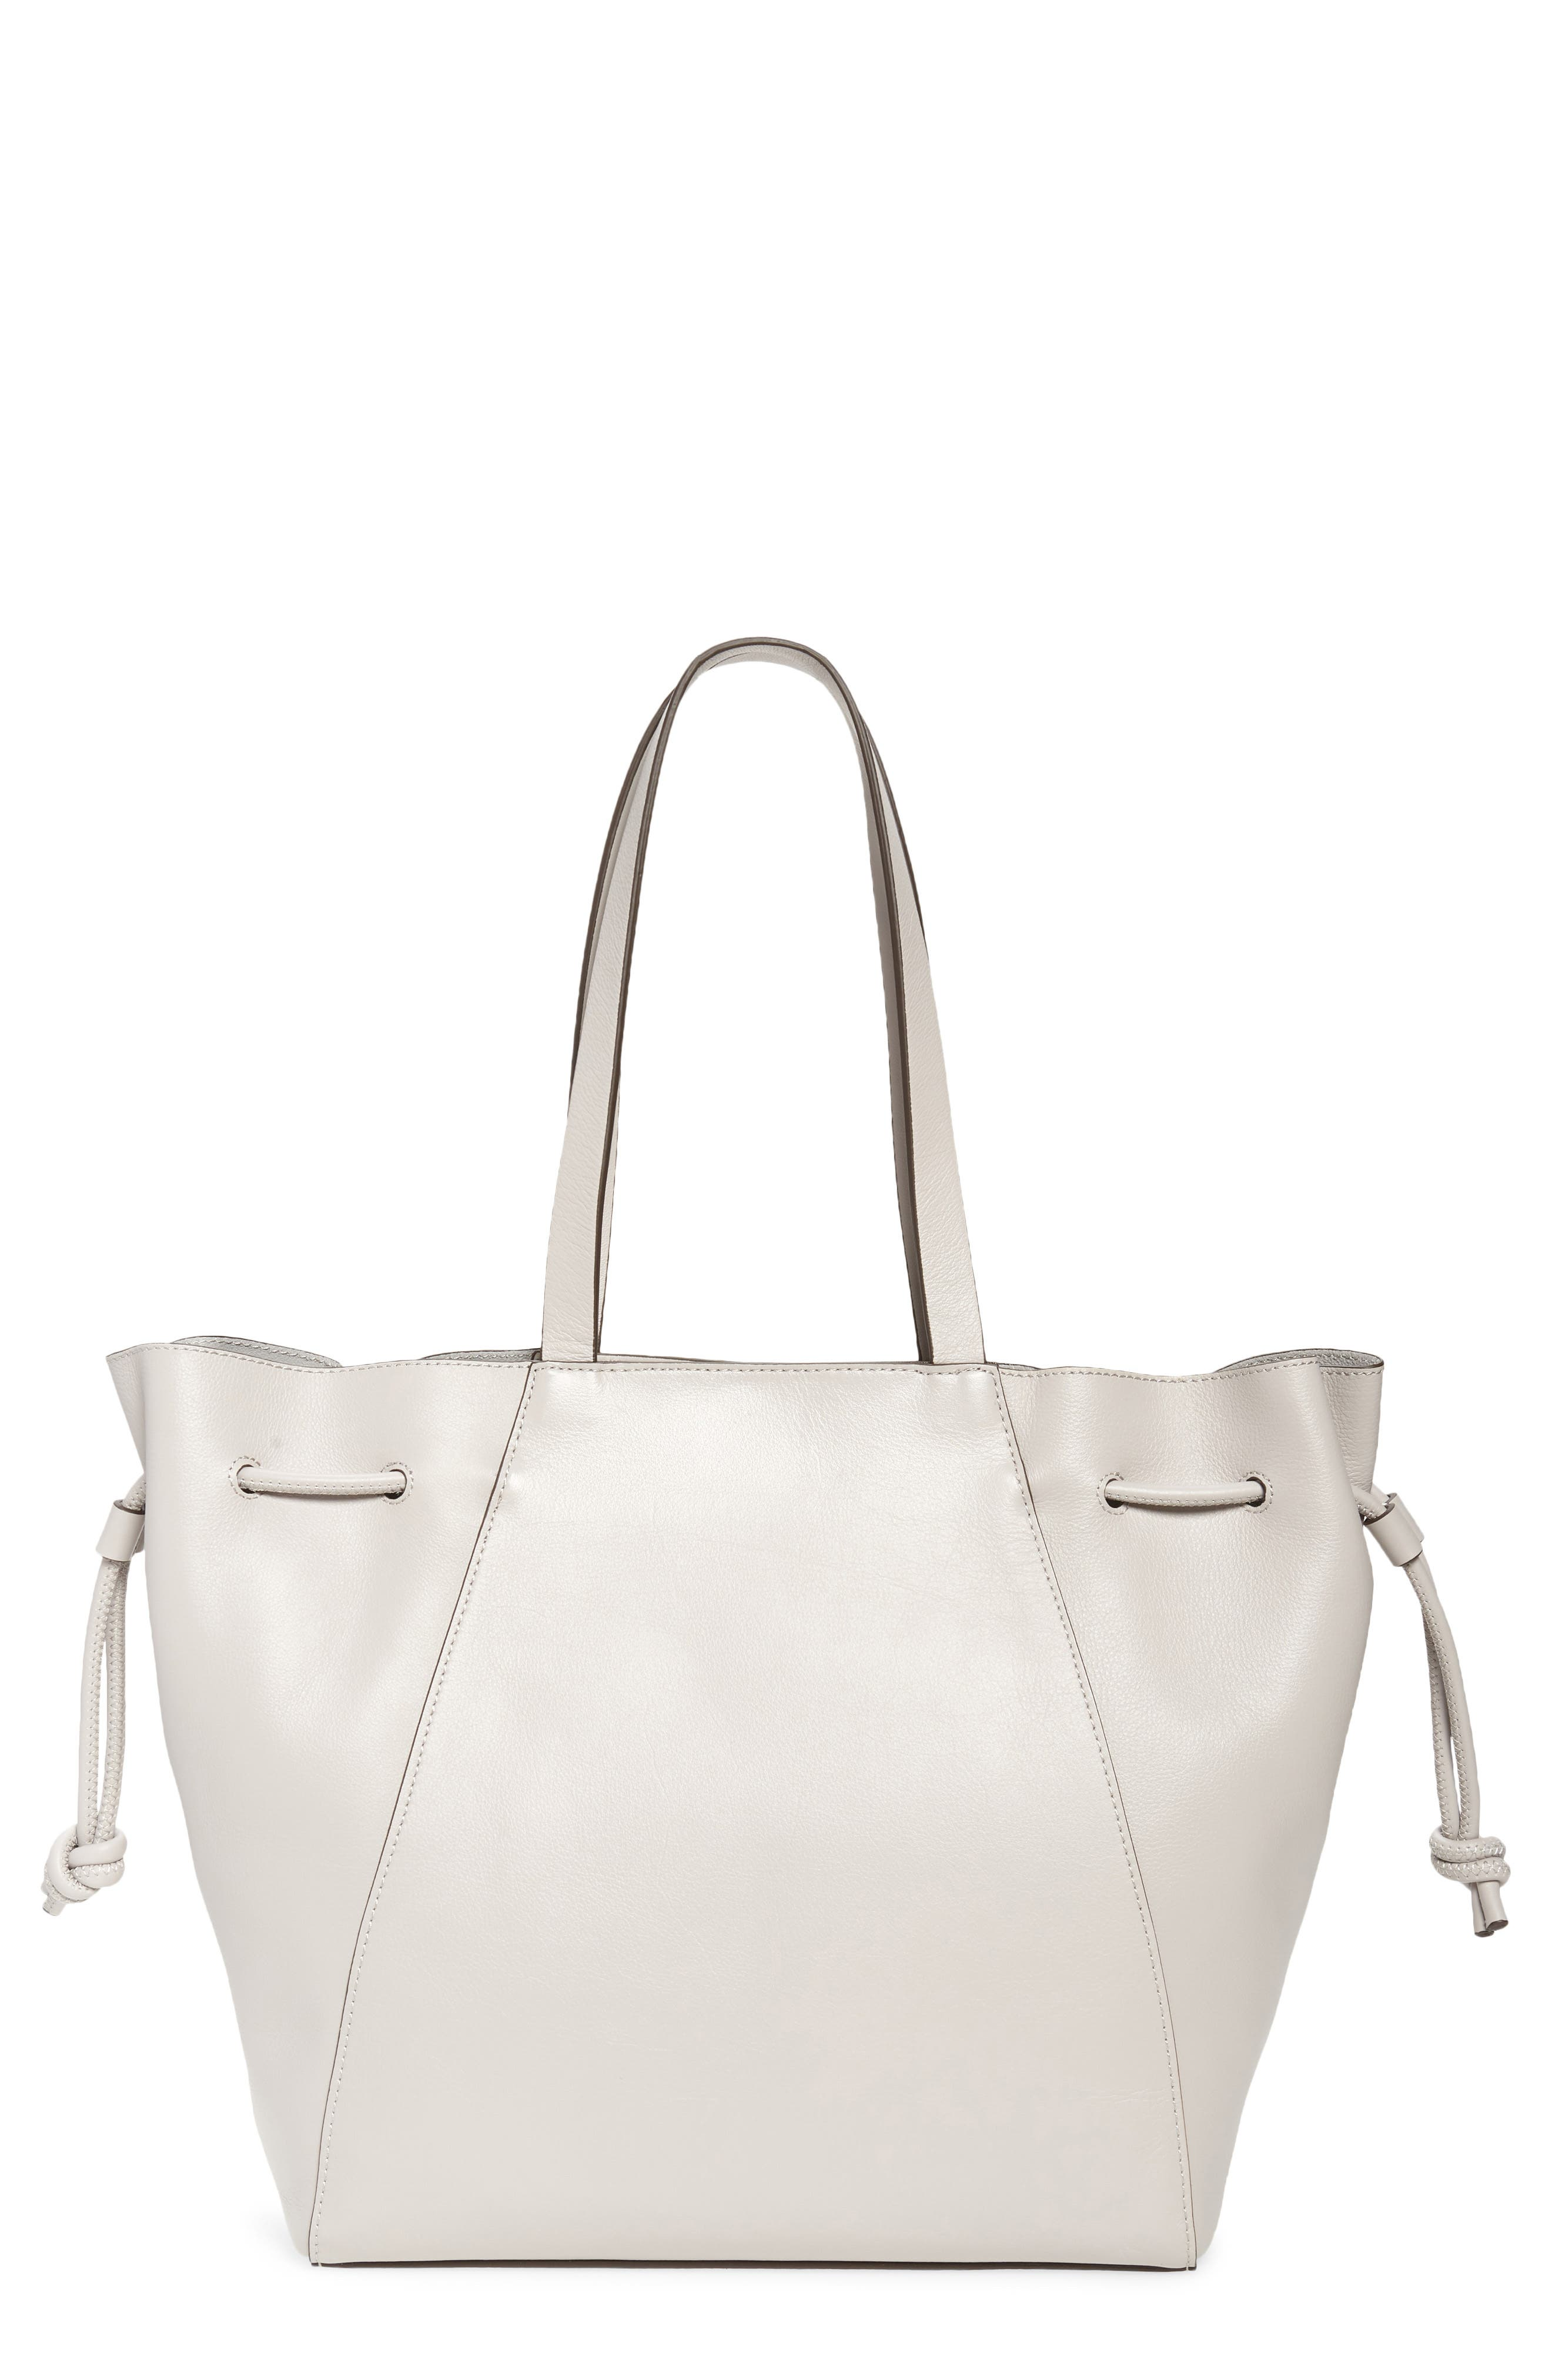 A knotted drawstring cinching the trapezoidal silhouette brings striking detail to a spacious carryall crafted from rich leather. When you buy Treasure & Bond, Nordstrom will donate 2.5% of net sales to organizations that work to empower youth. Style Name: Treasure & Bond Delaney Drawstring Leather Tote. Style Number: 5960321. Available in stores.